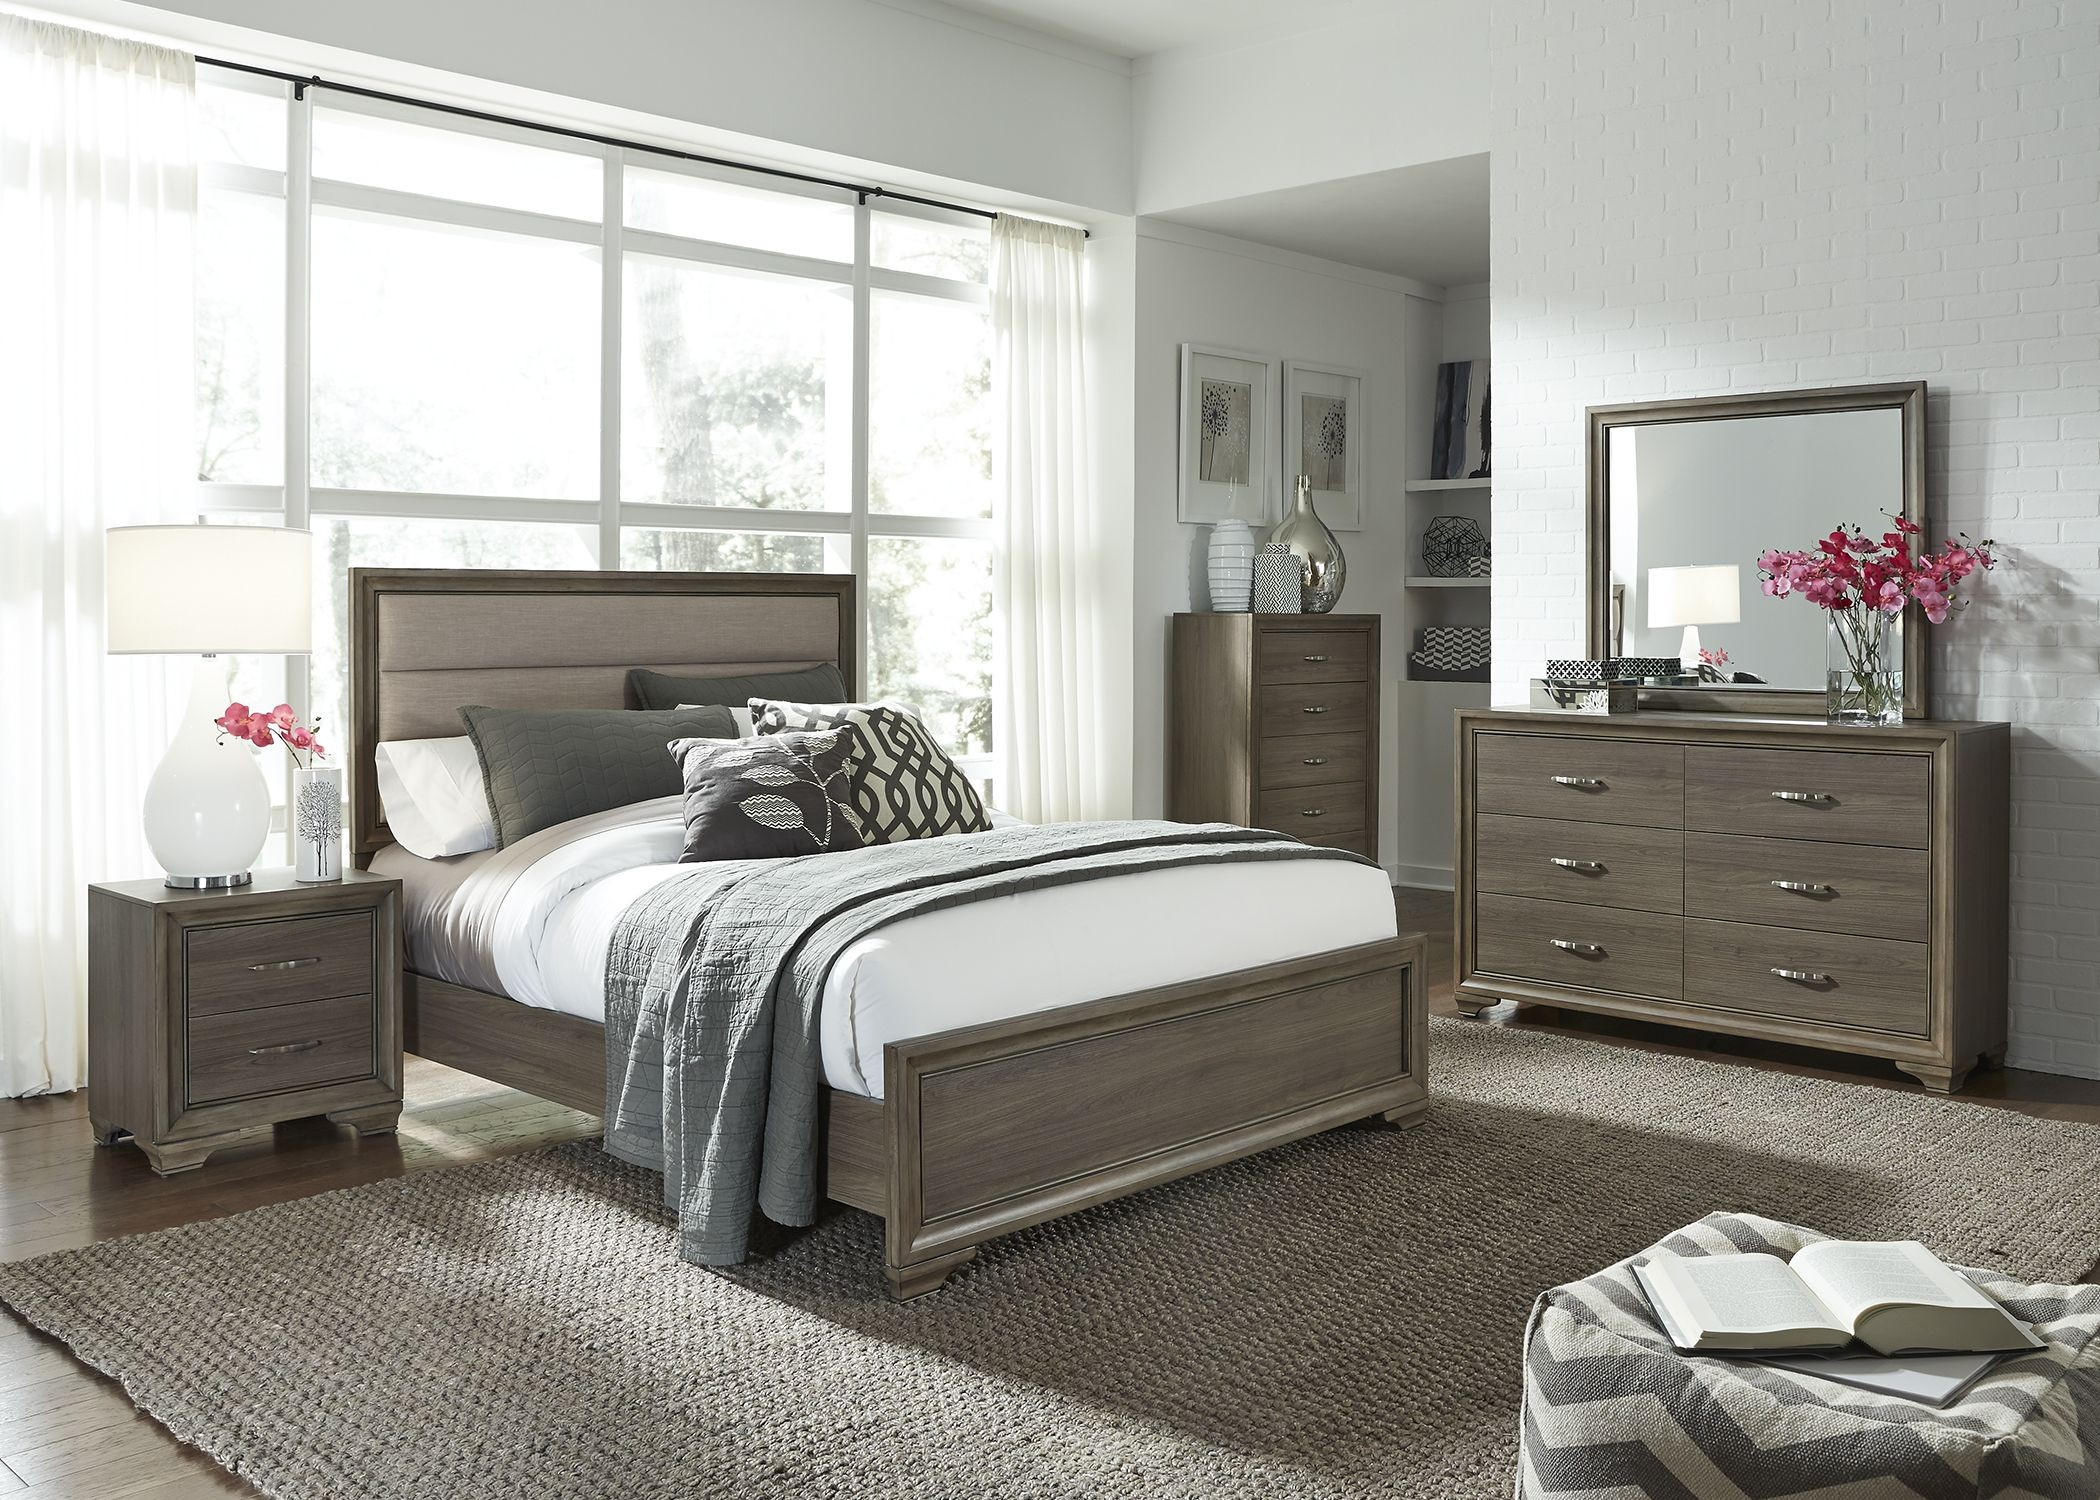 Hartly Gray Wash Youth Upholstered Panel Bedroom Set from